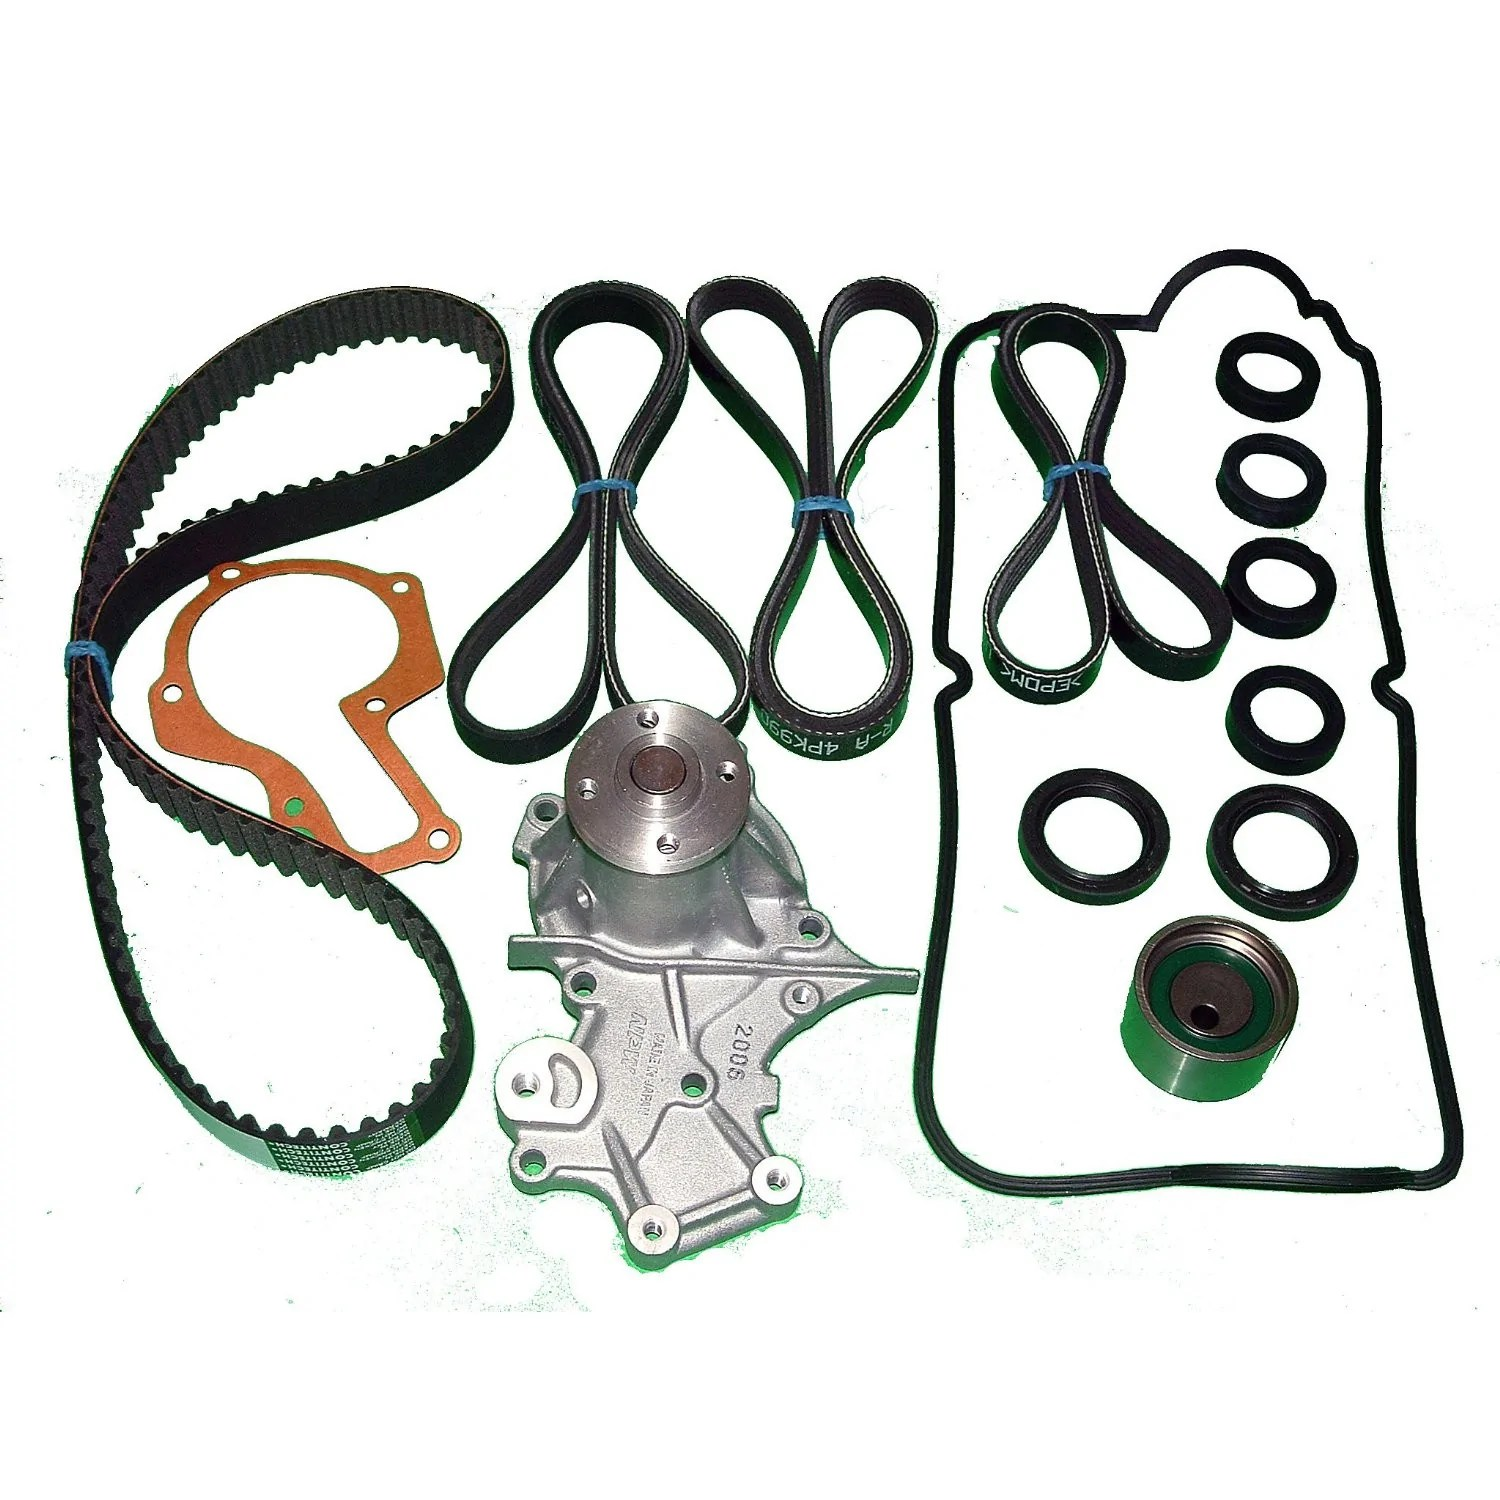 hight resolution of timing belt kit suzuki esteem 1 6l 2000 1999 1998 1997 1996 1995